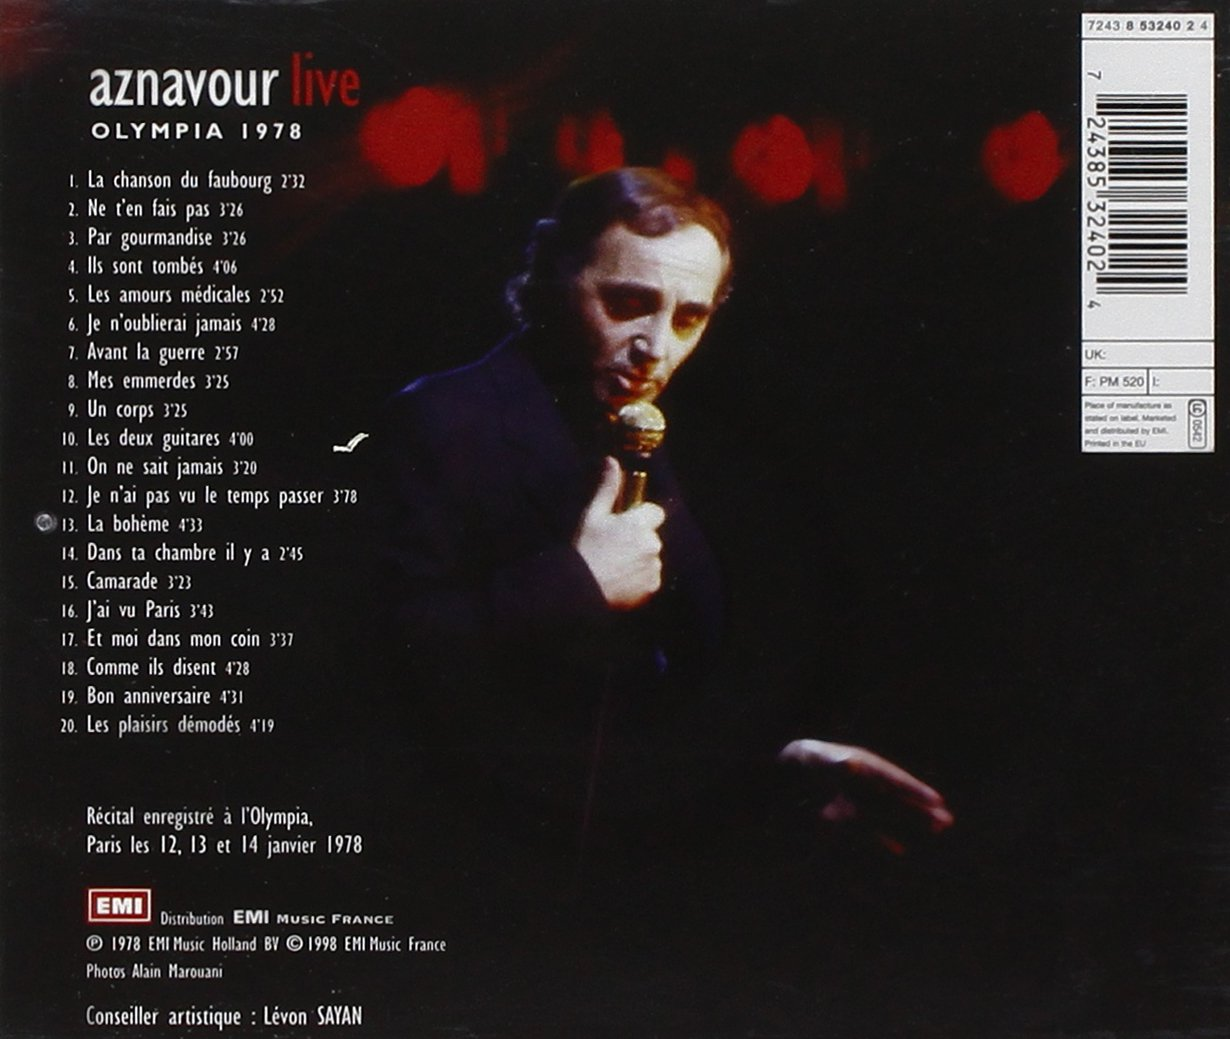 Aznavour Live: Olympia 1978